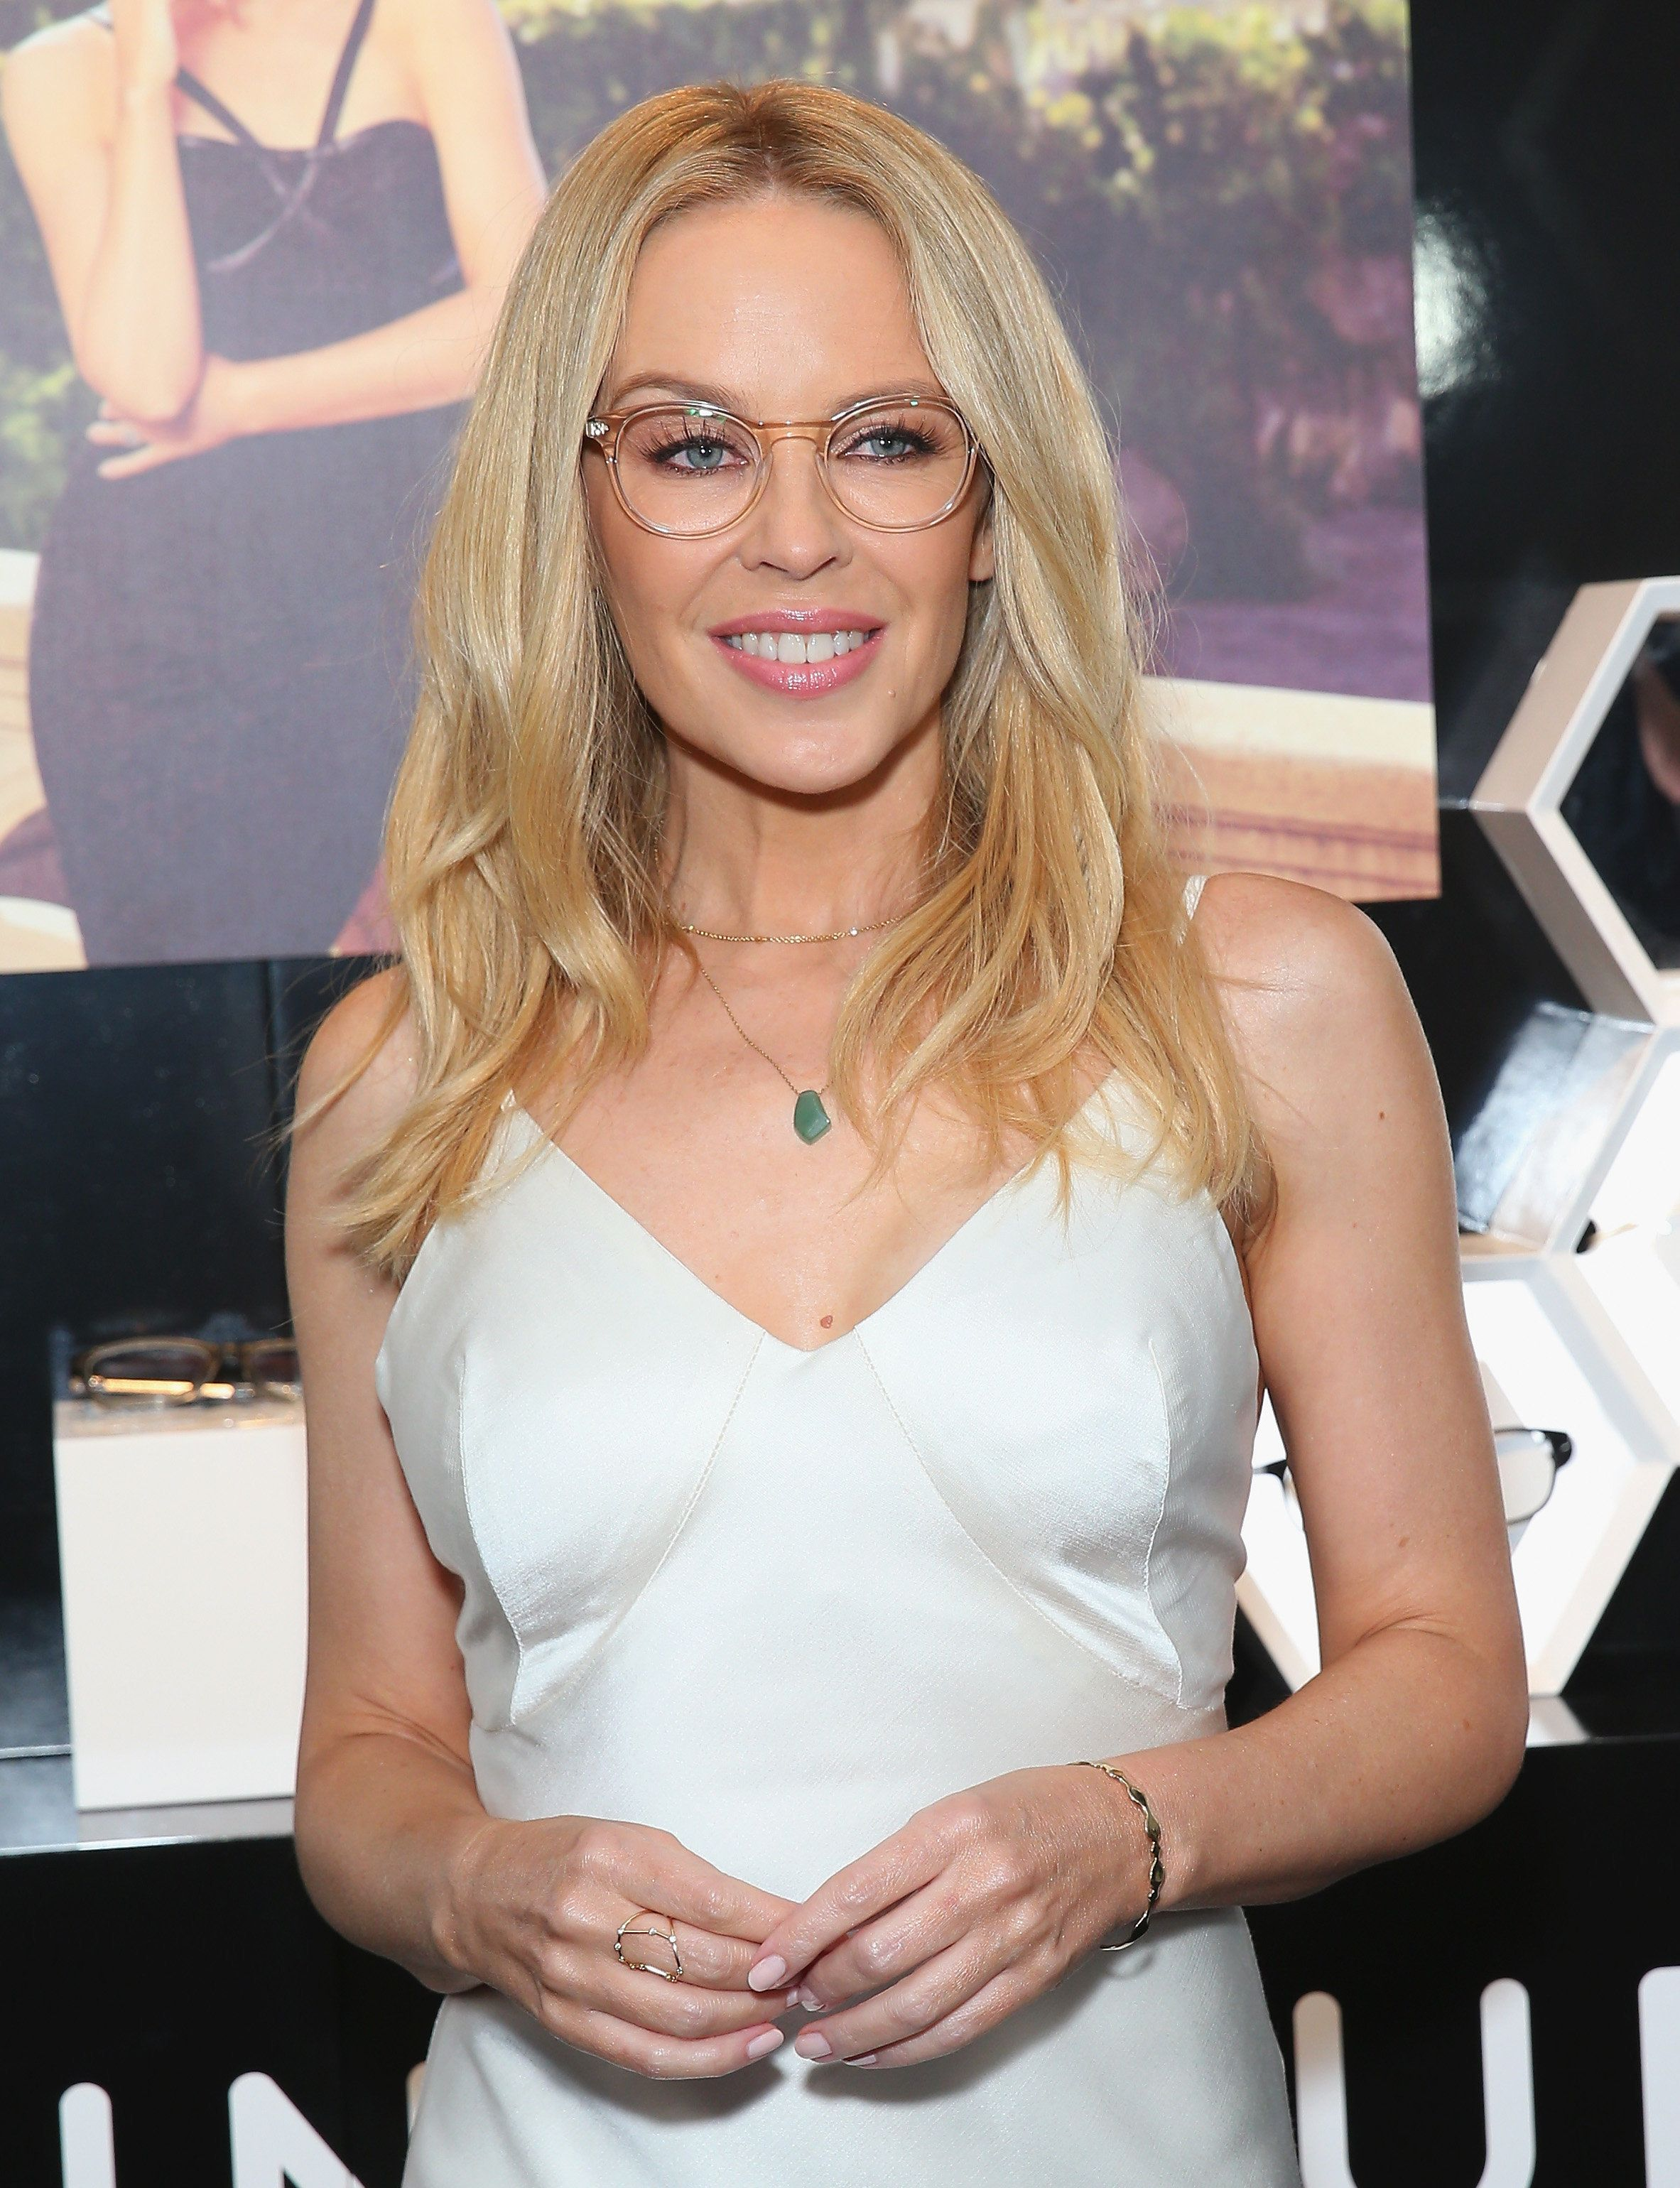 Kylie Minogue poses at the launch of her eyewear collection for Specsavers in